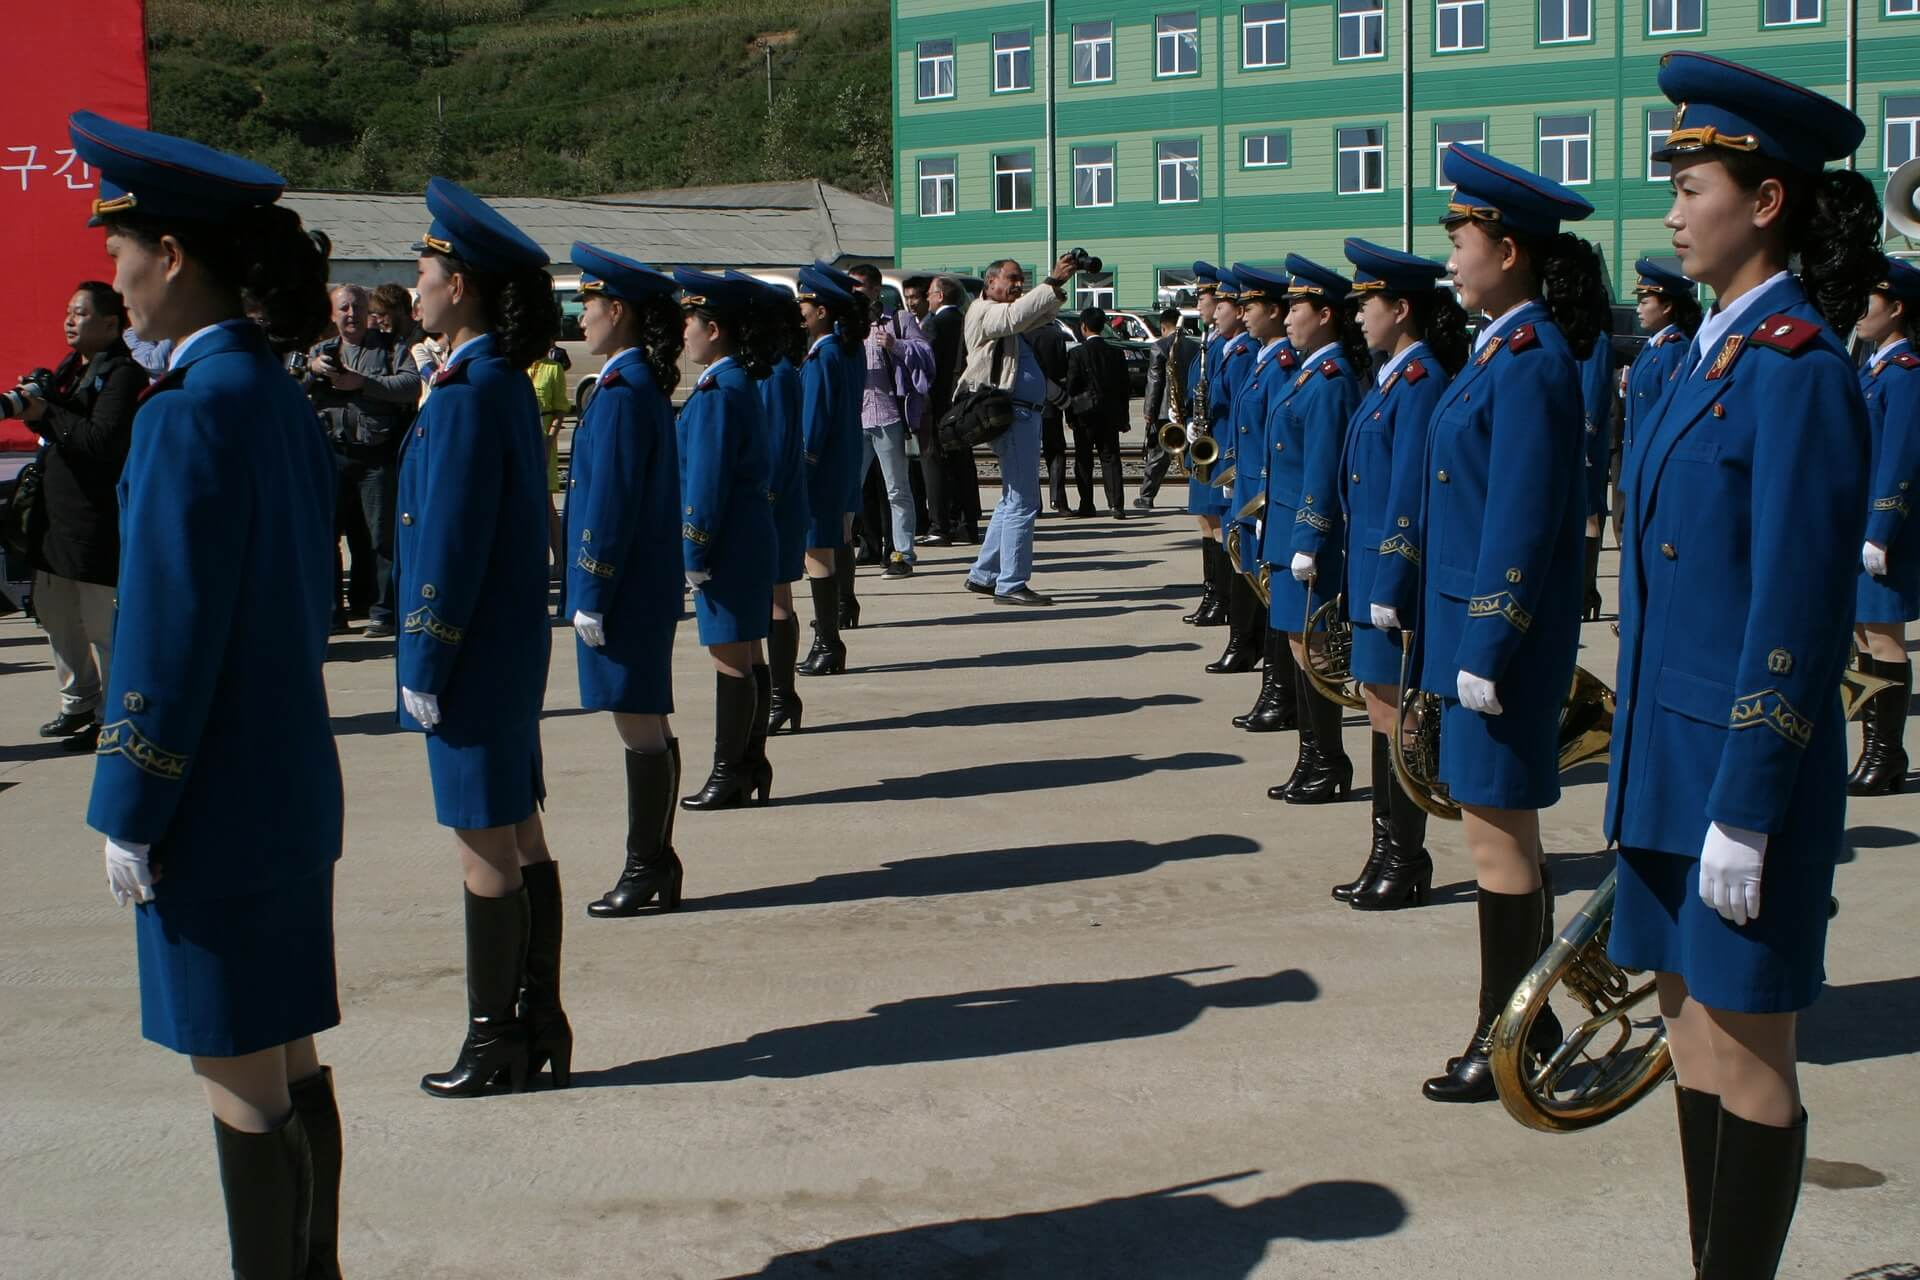 Parade at North Korea